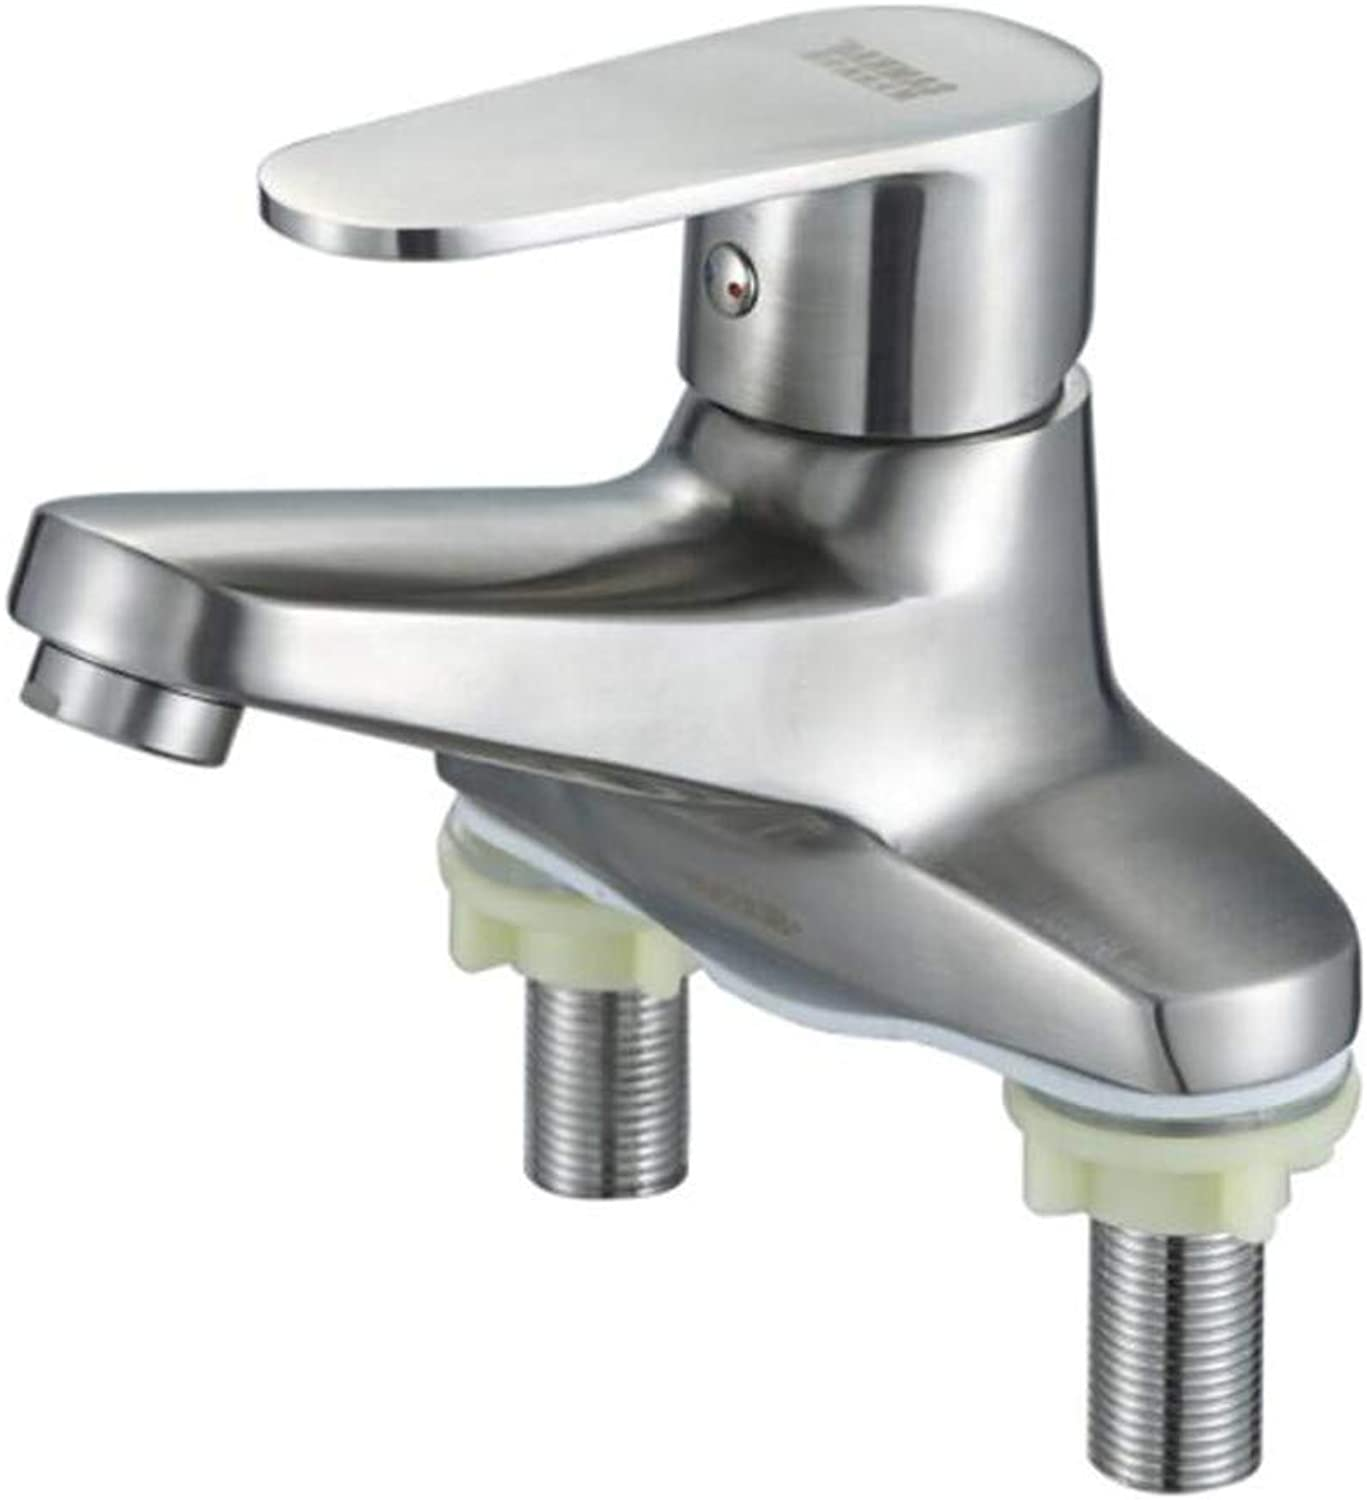 Faucet Waste Mono Spoutstainless Steel Basin, Double-Hole Cold and Hot Toilet Basin and Table Basin